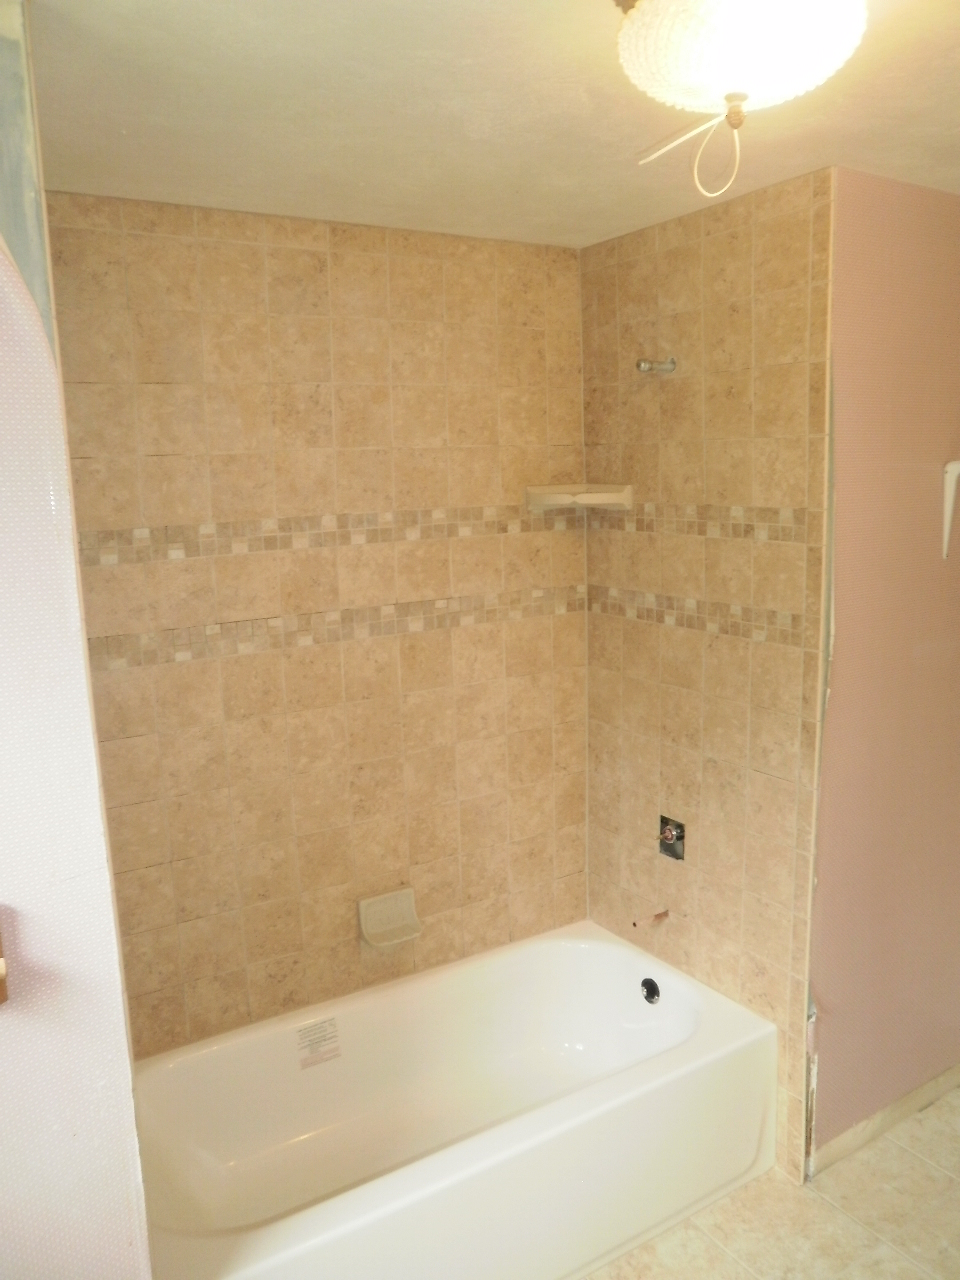 Integrity installations a division of front for Bathroom remodel 80122